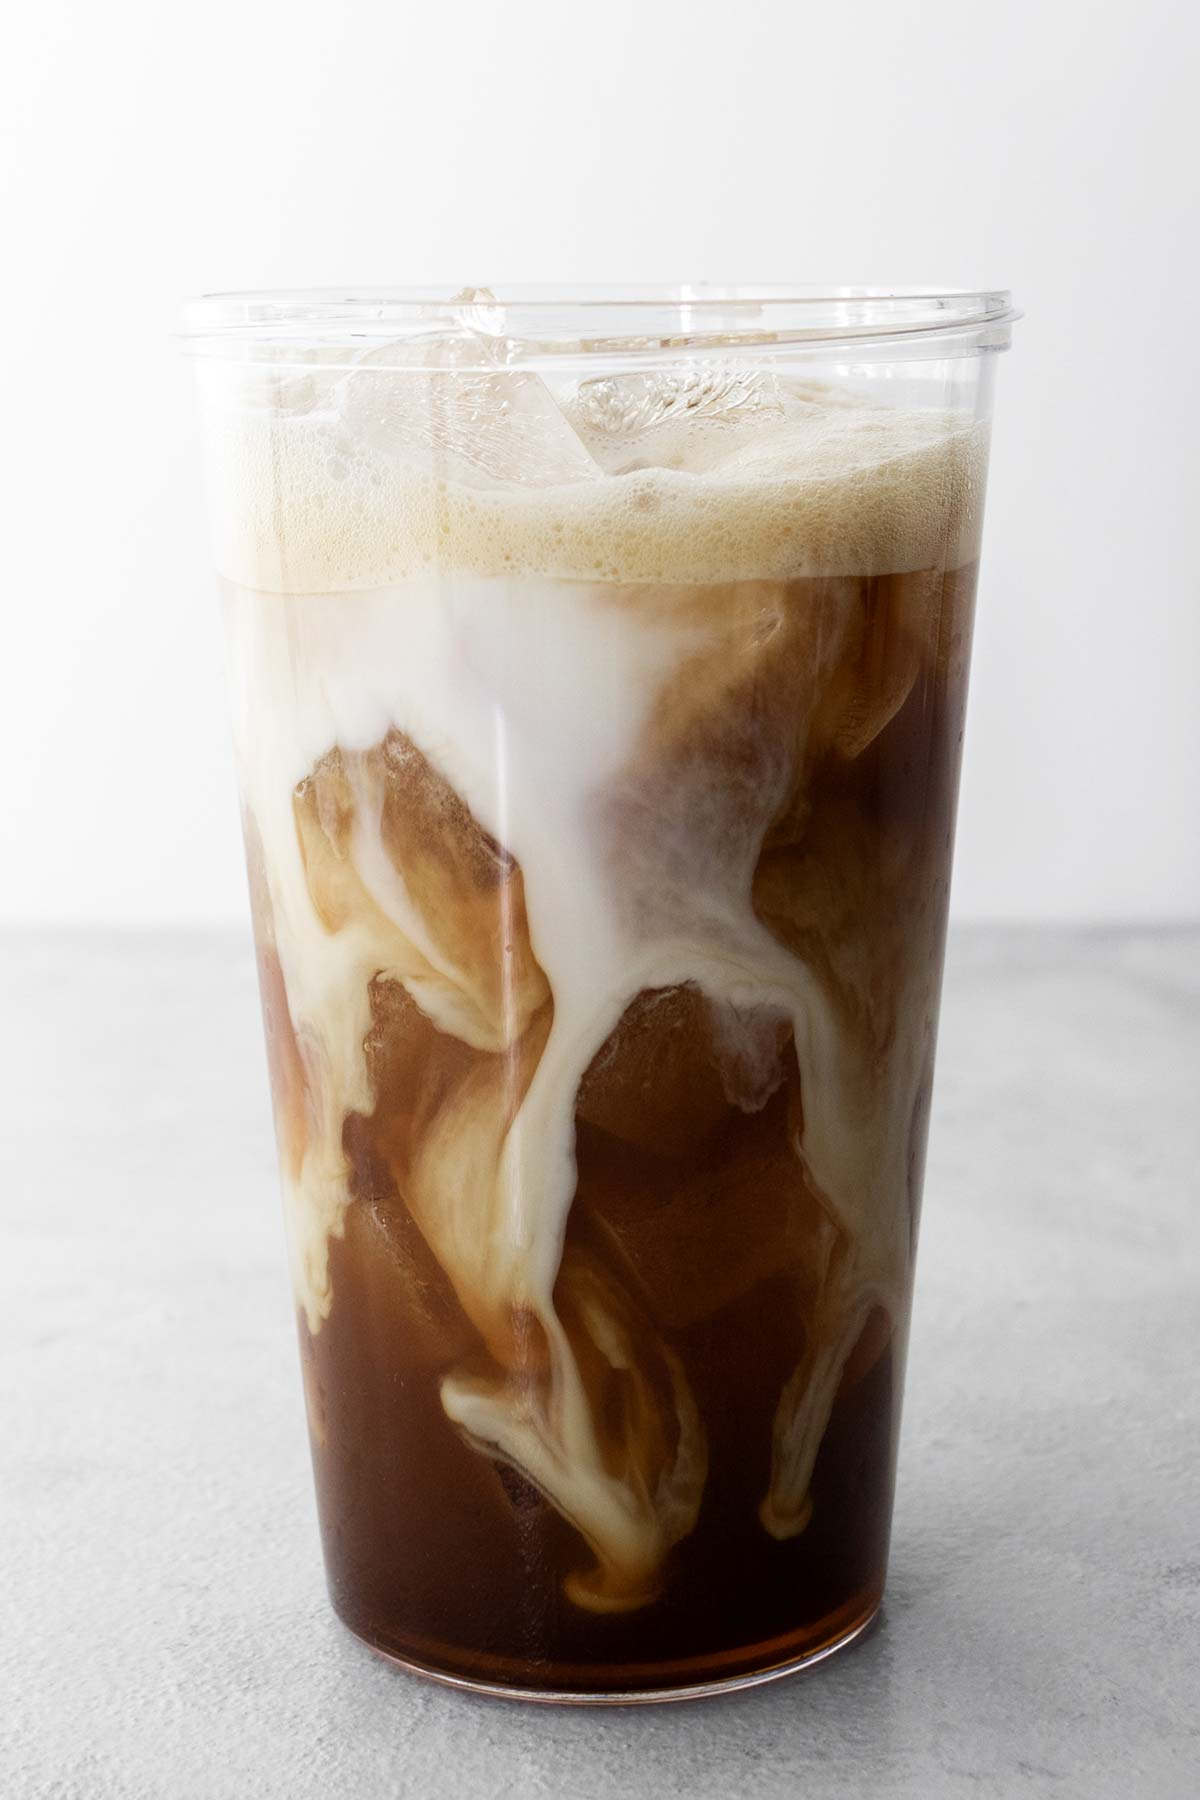 Starbucks Iced Shaken Espresso copycat drink in a clear cup.